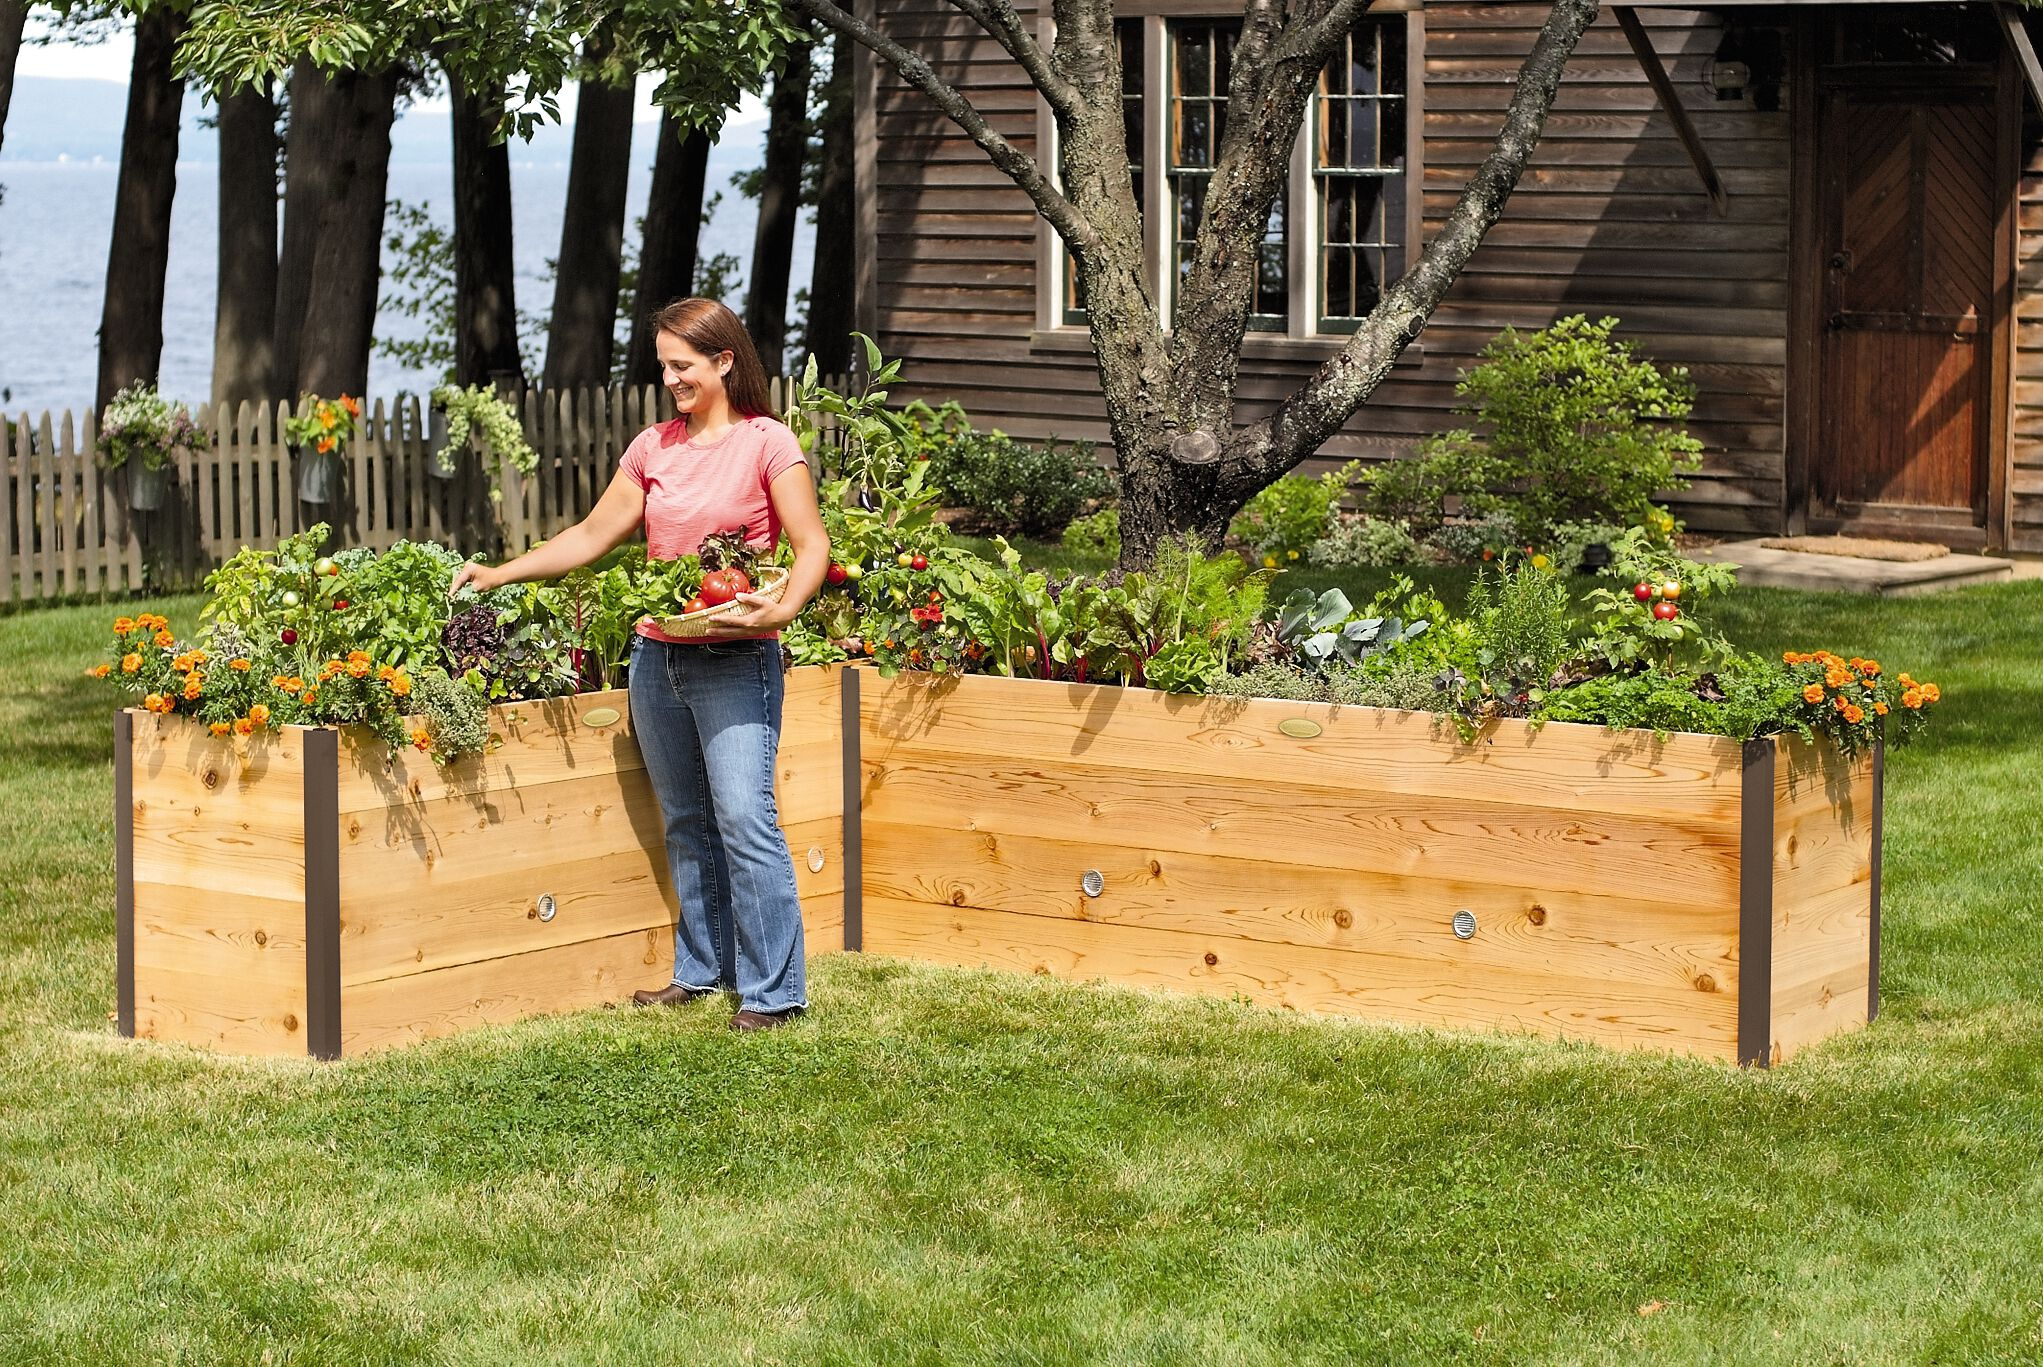 Backyard Garden Box Design Garden And Patio Diy Recycled Wood Garden Planter  Boxes With Legs For